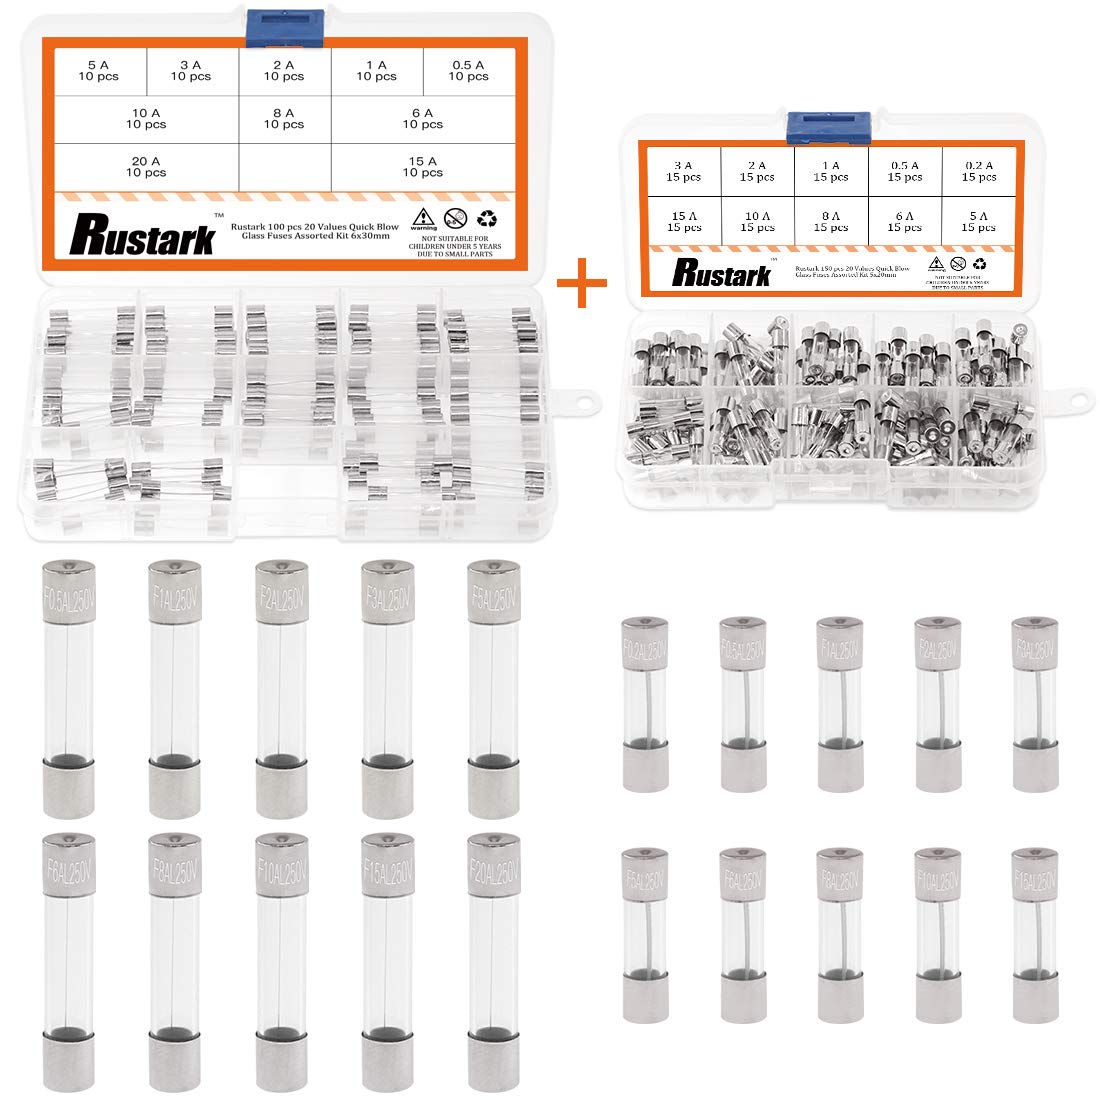 Rustark 250 pcs 20 Values Quick Blow Glass Fuses Assorted Kit 250V 5x20mm 0.2 0.5 1 2 3 5 6 8 10 15 and 6x30mm 0.5 1 2 3 5 6 8 10 15 20 Amp Mini Glass Tube Fuse in Plastic Boxes